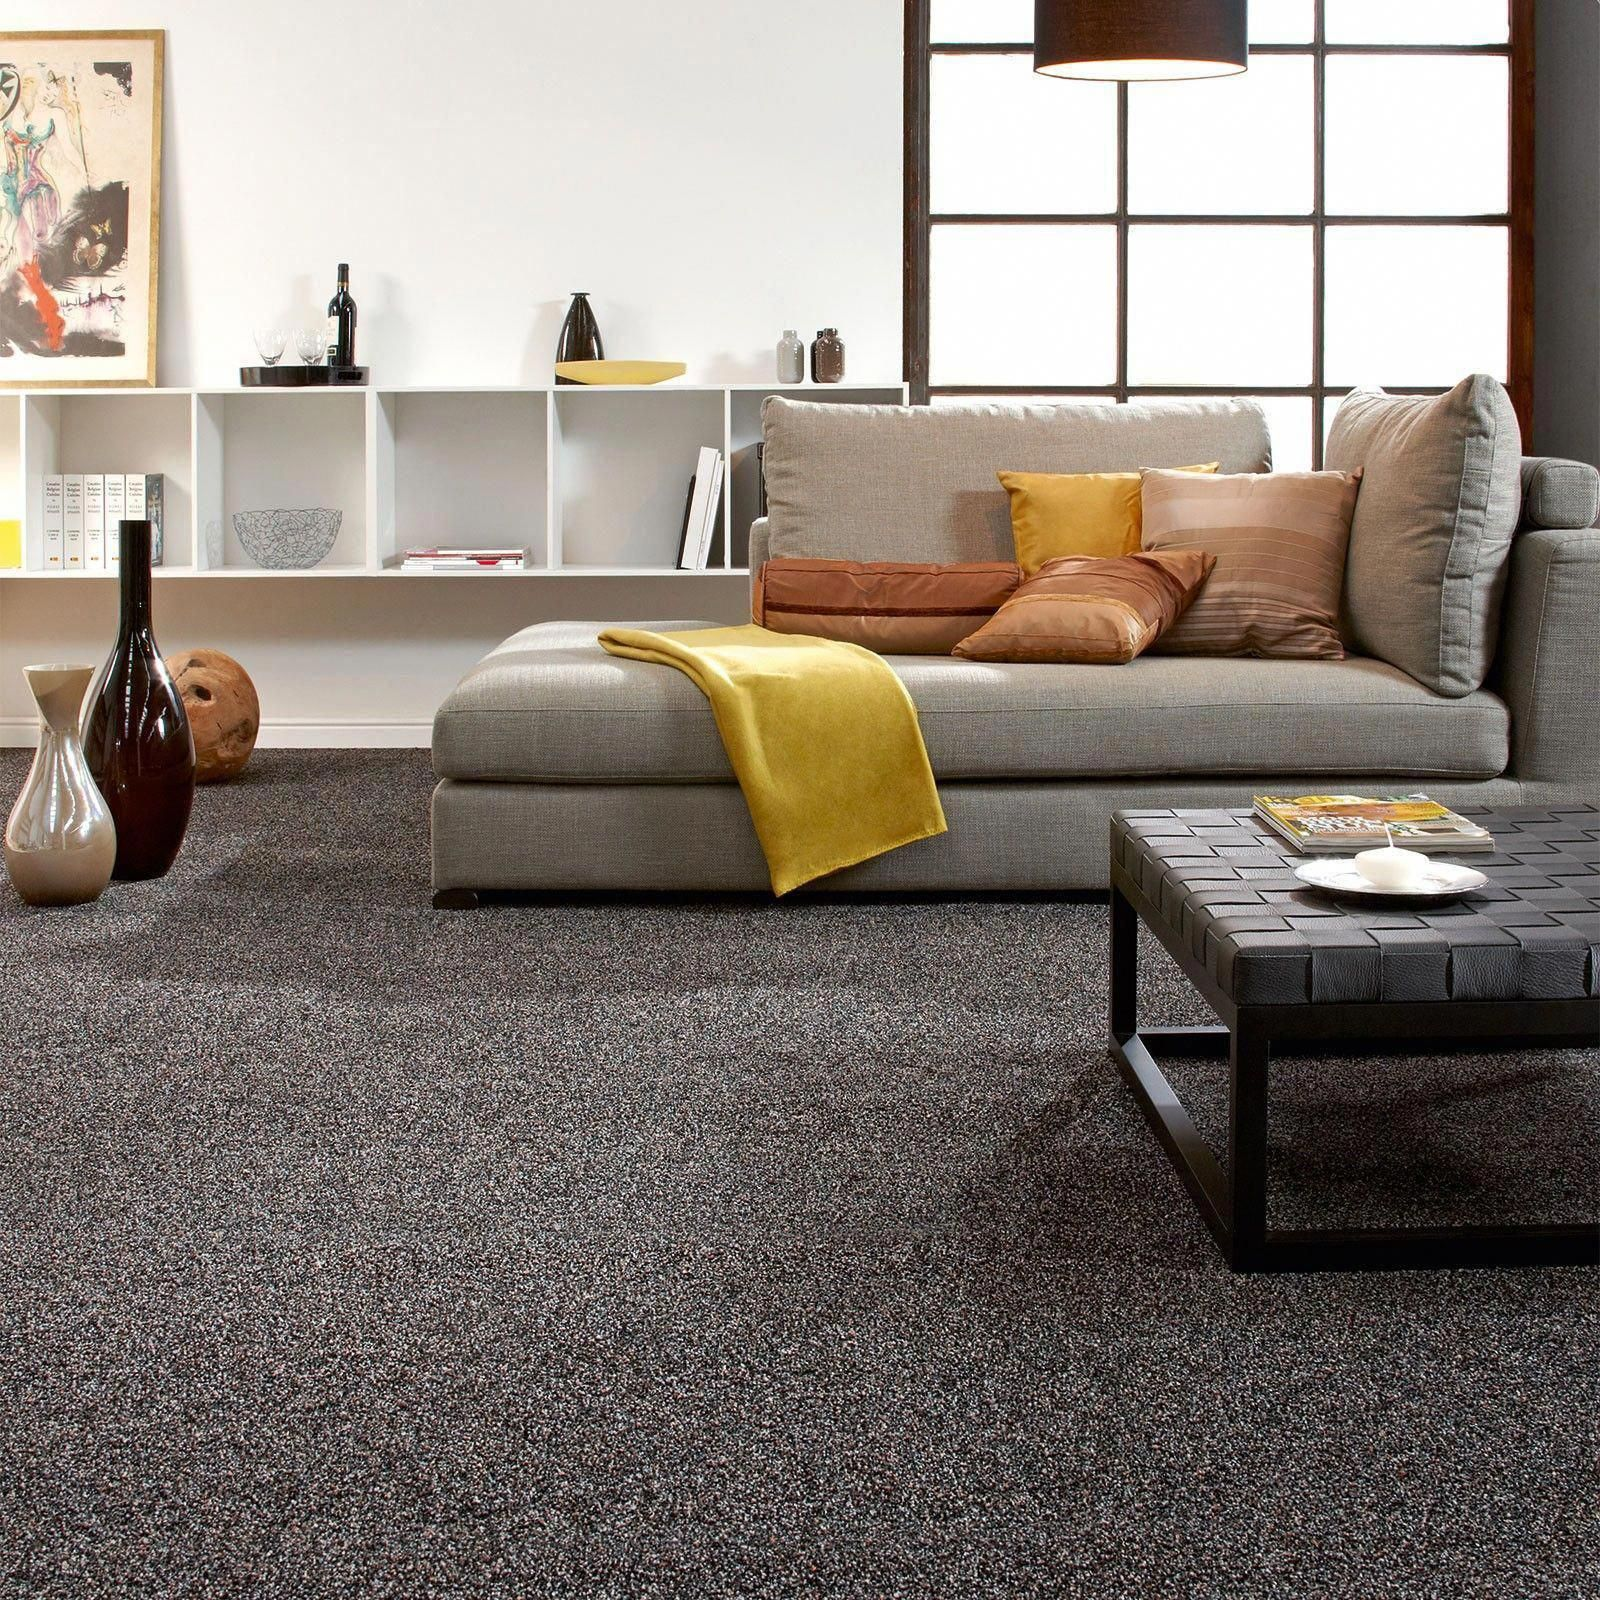 Carpet Runners For Sale Near Me #LookingForCarpetRunners